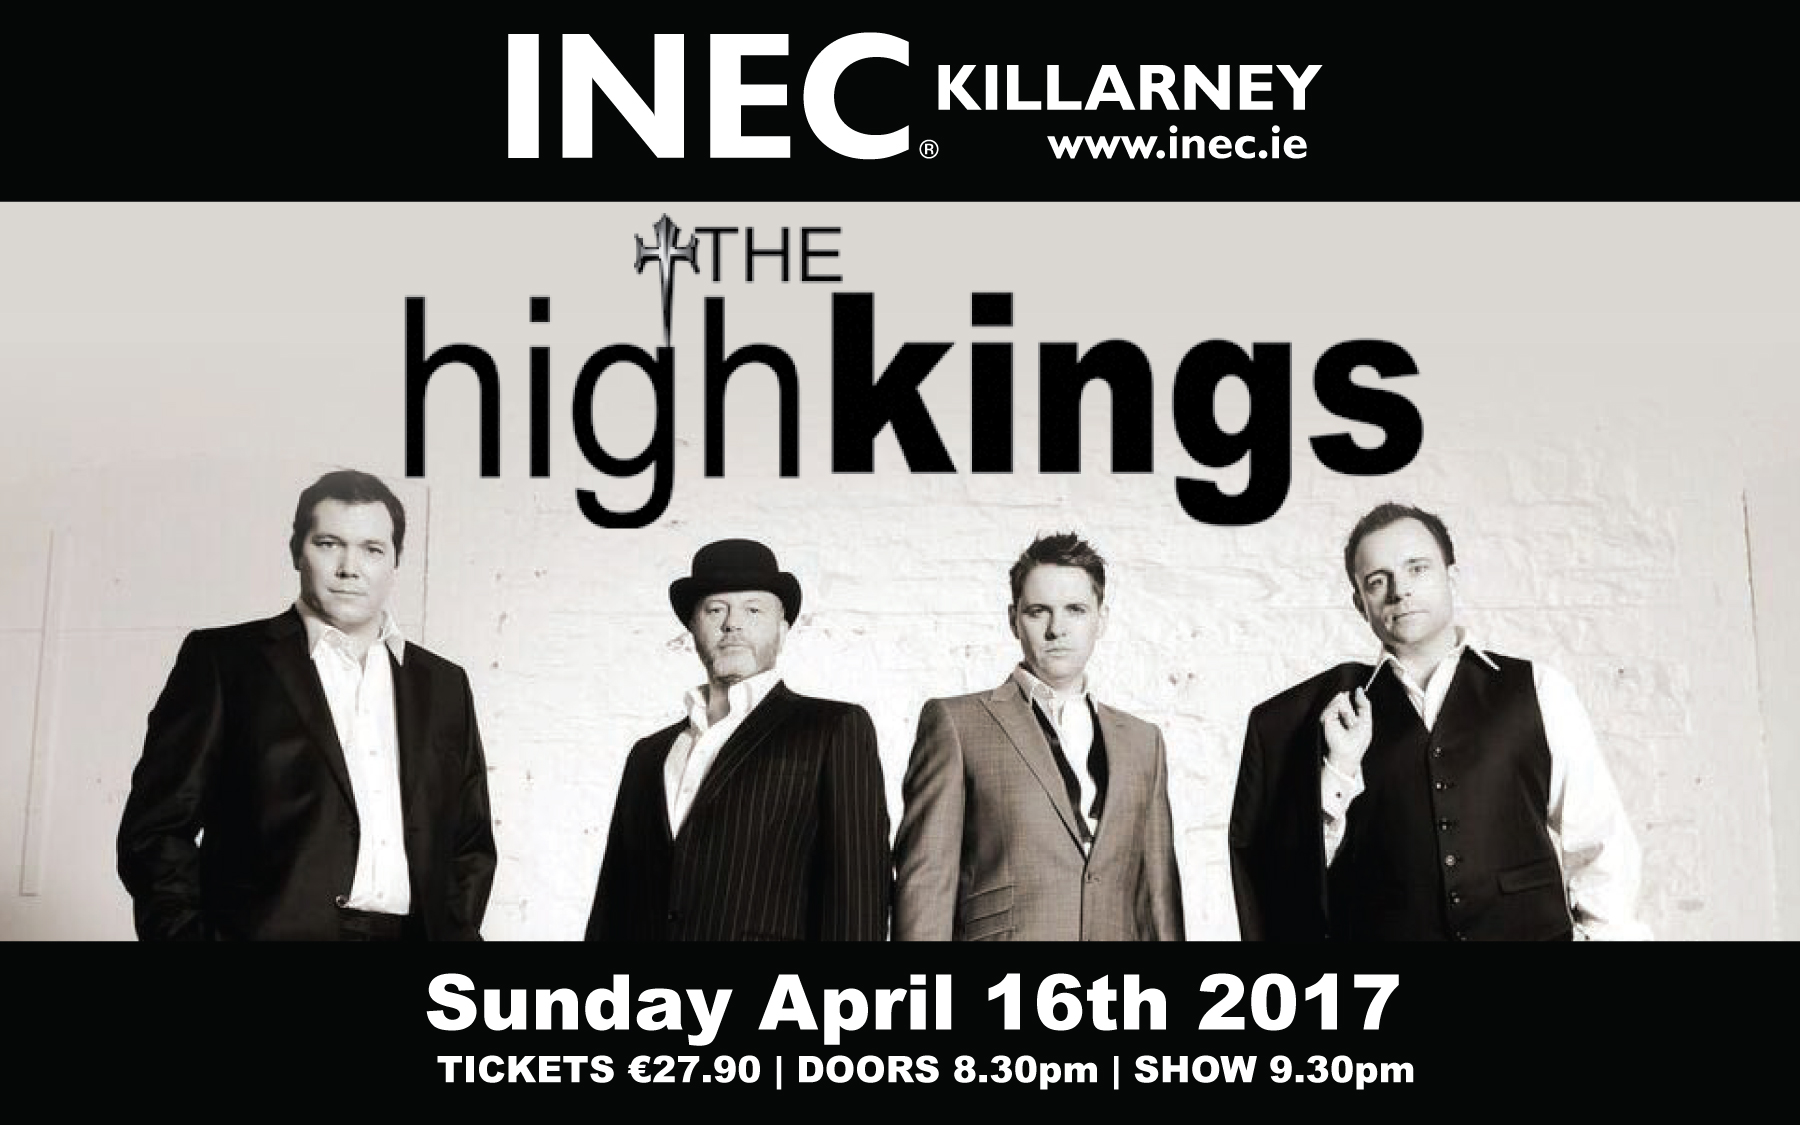 The High Kings return Easter Sunday, April 16th